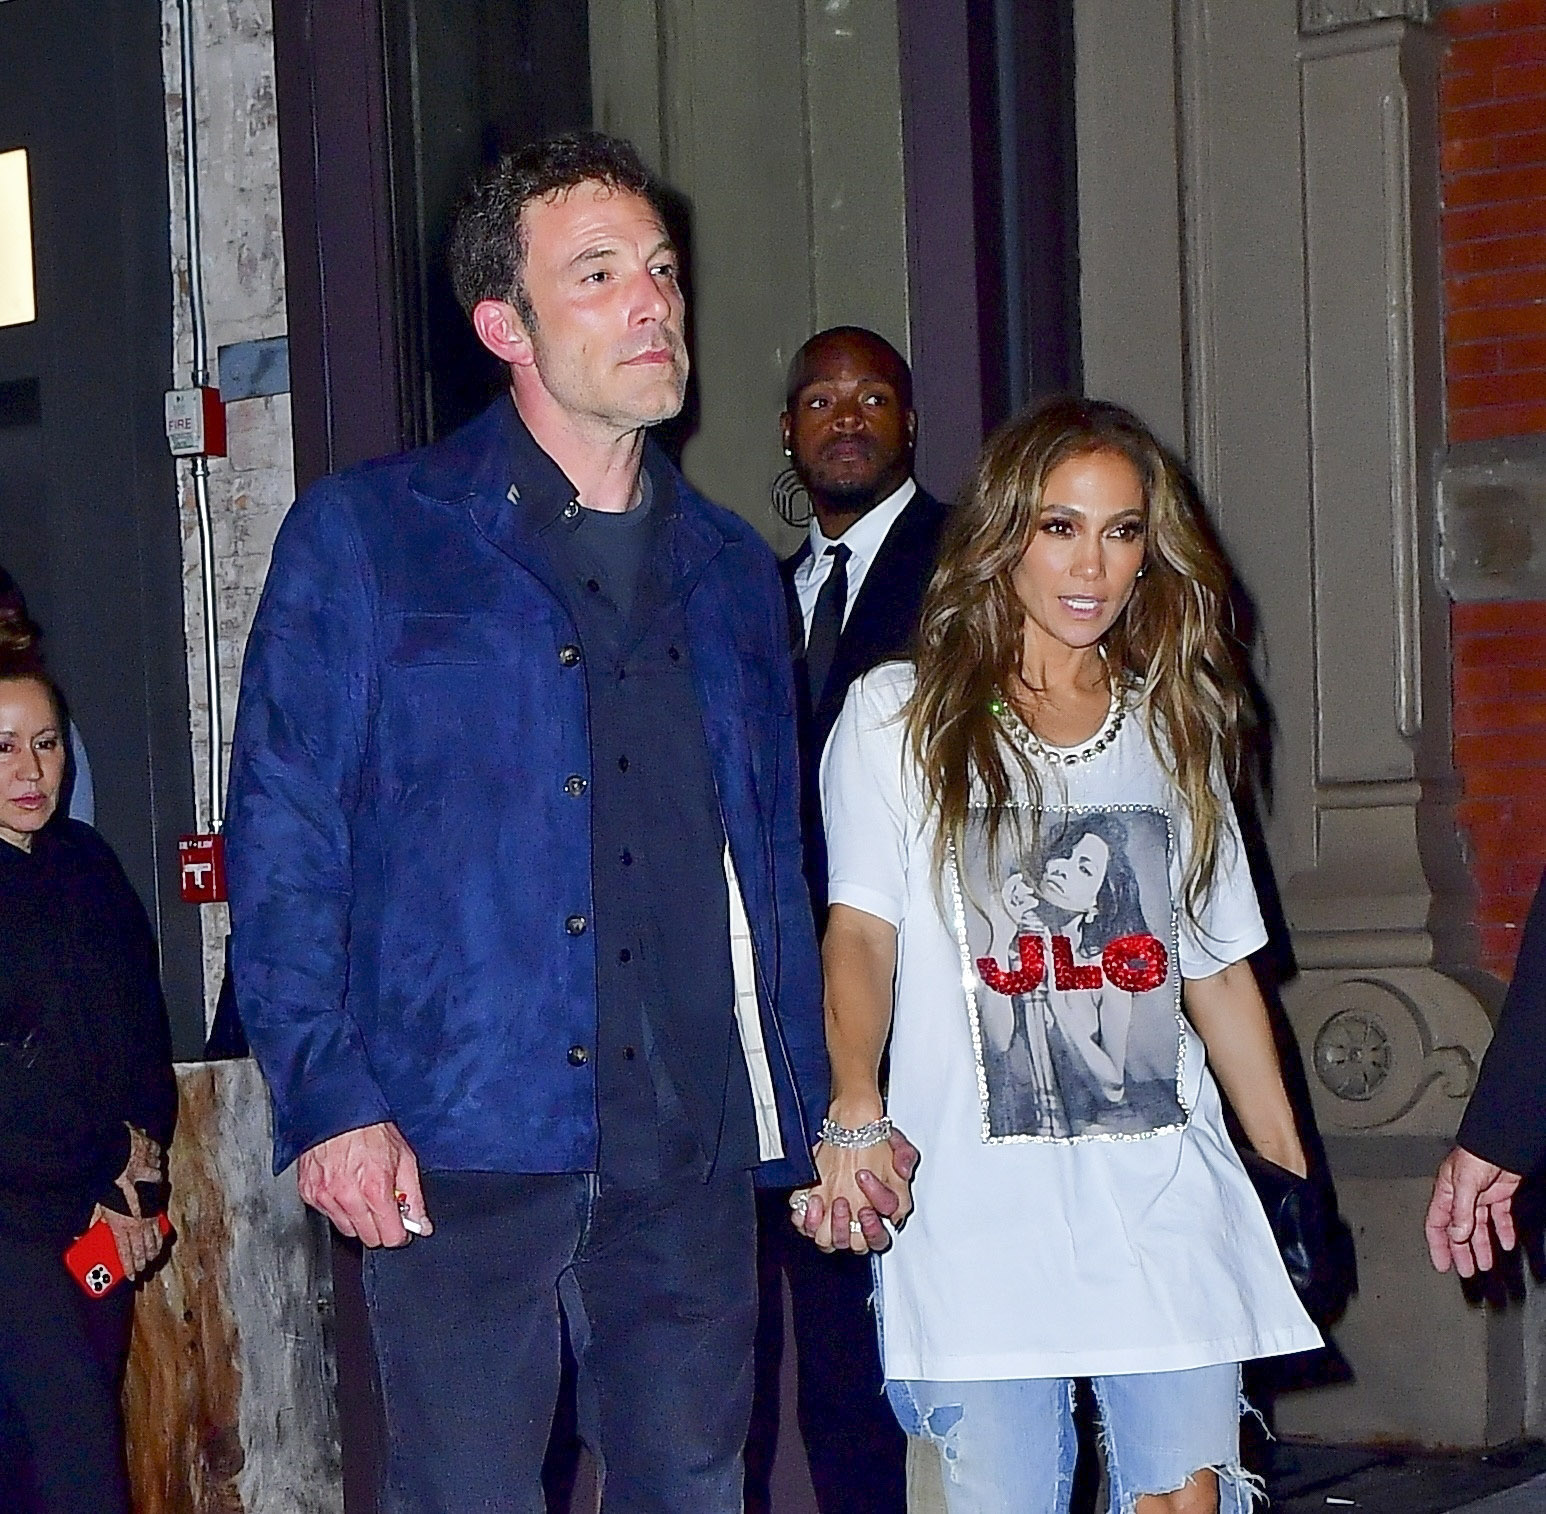 Bennifer go hand in hand to dinner following the Global Citizen Live Festival in NYC